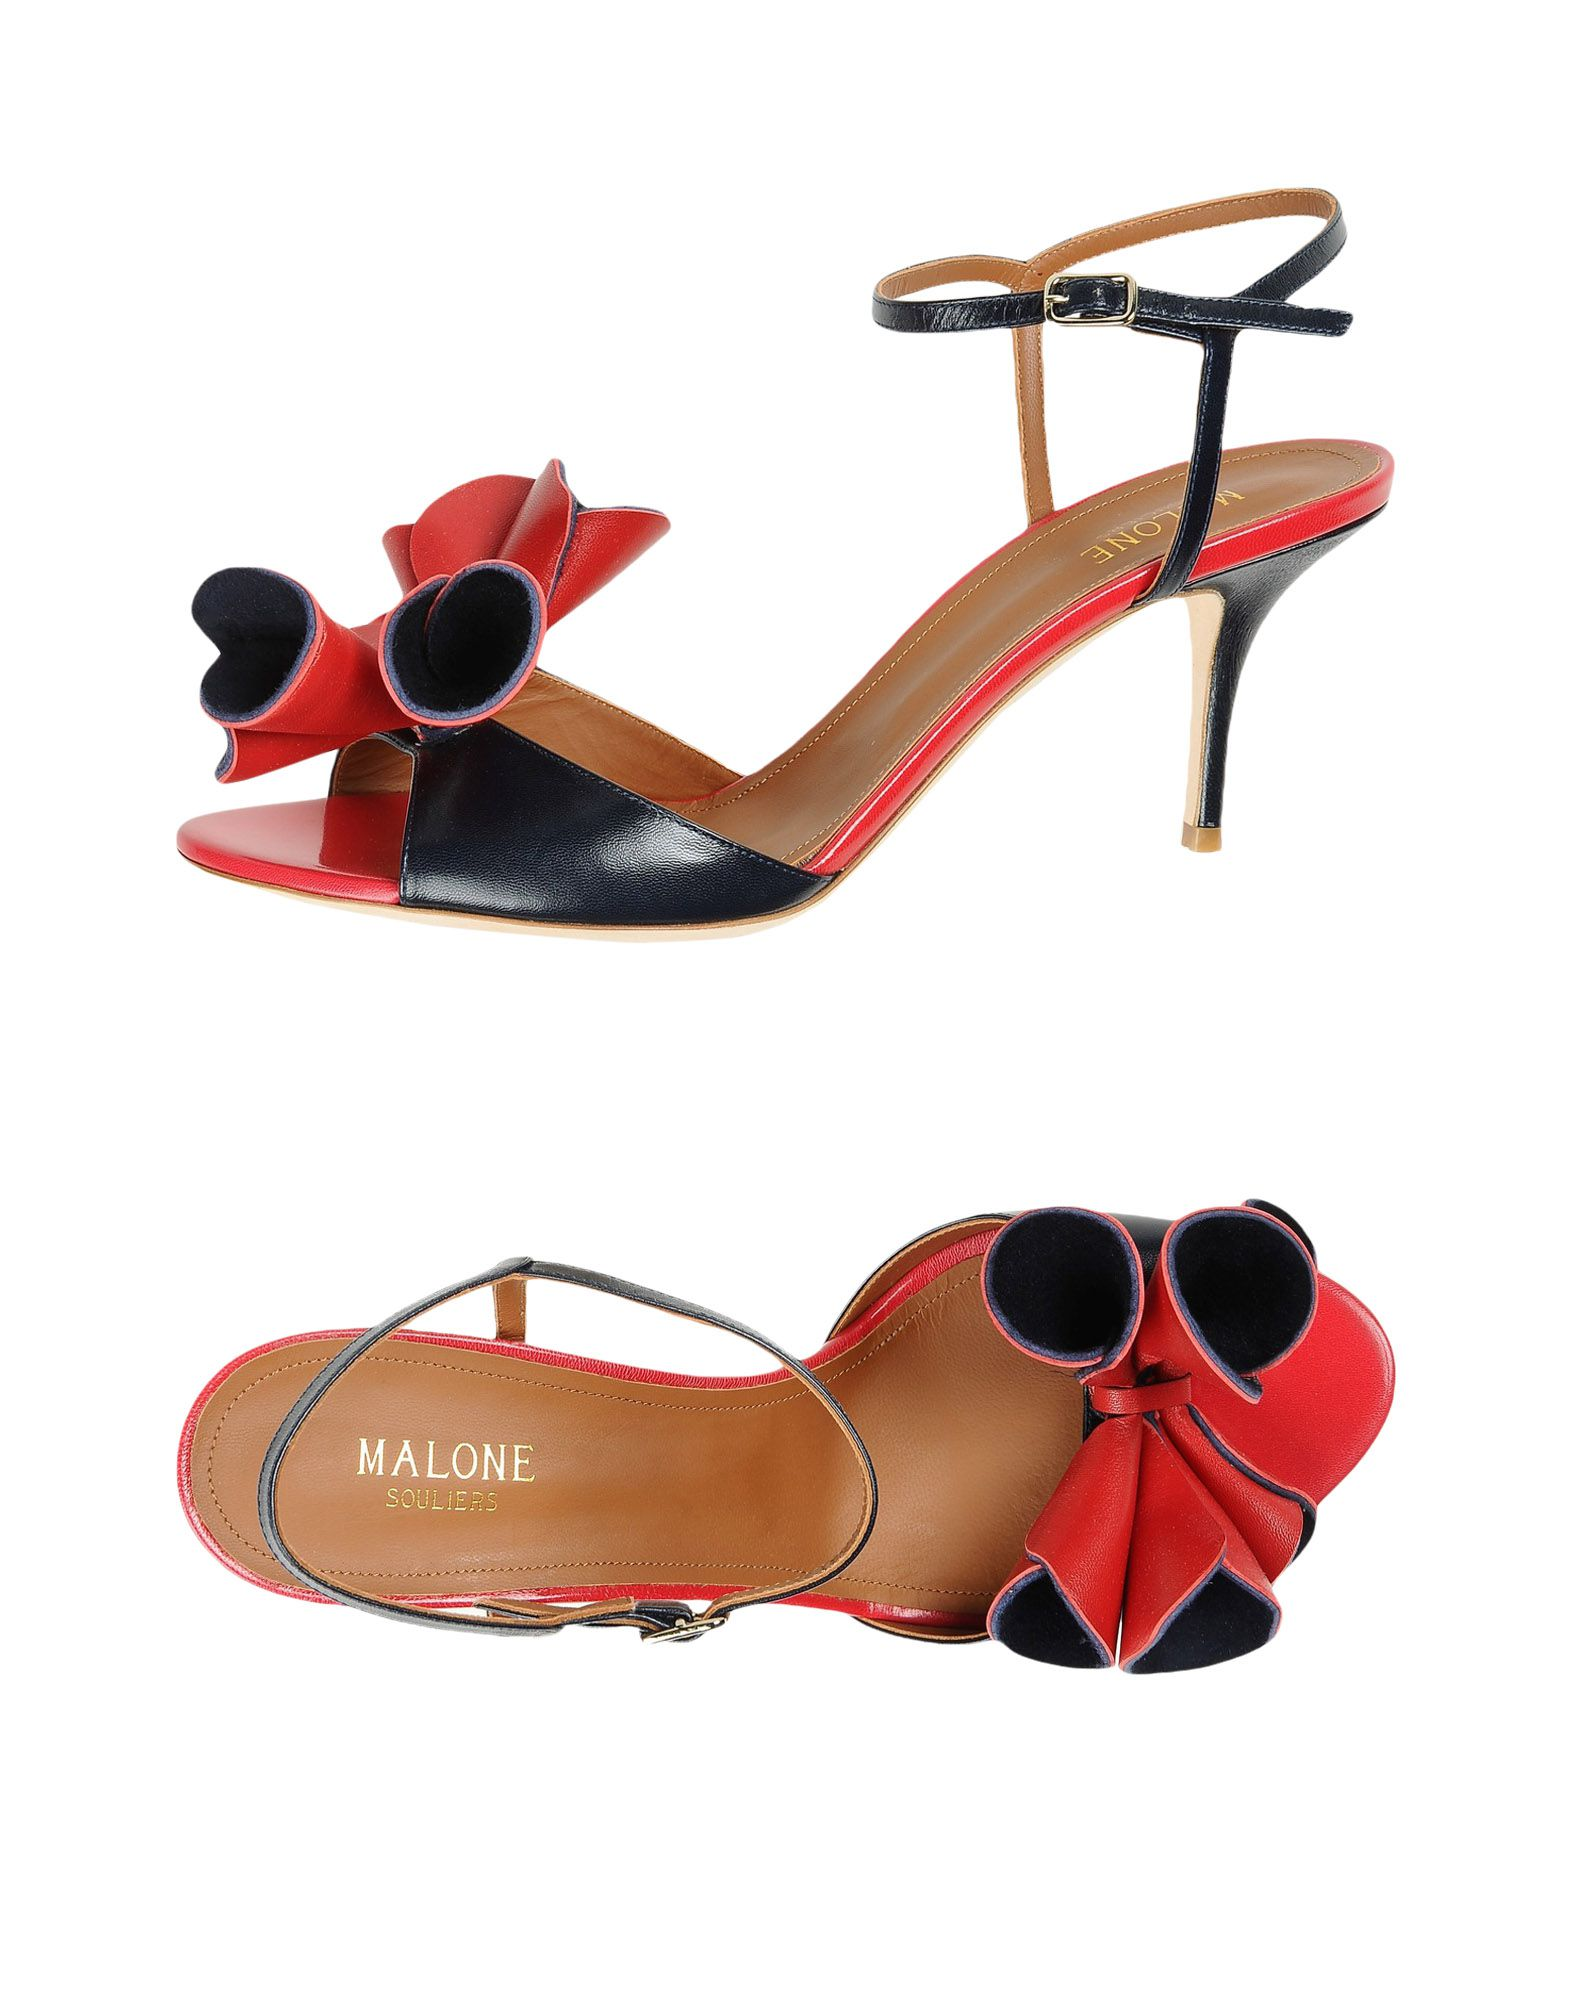 'Malone Souliers Sandals